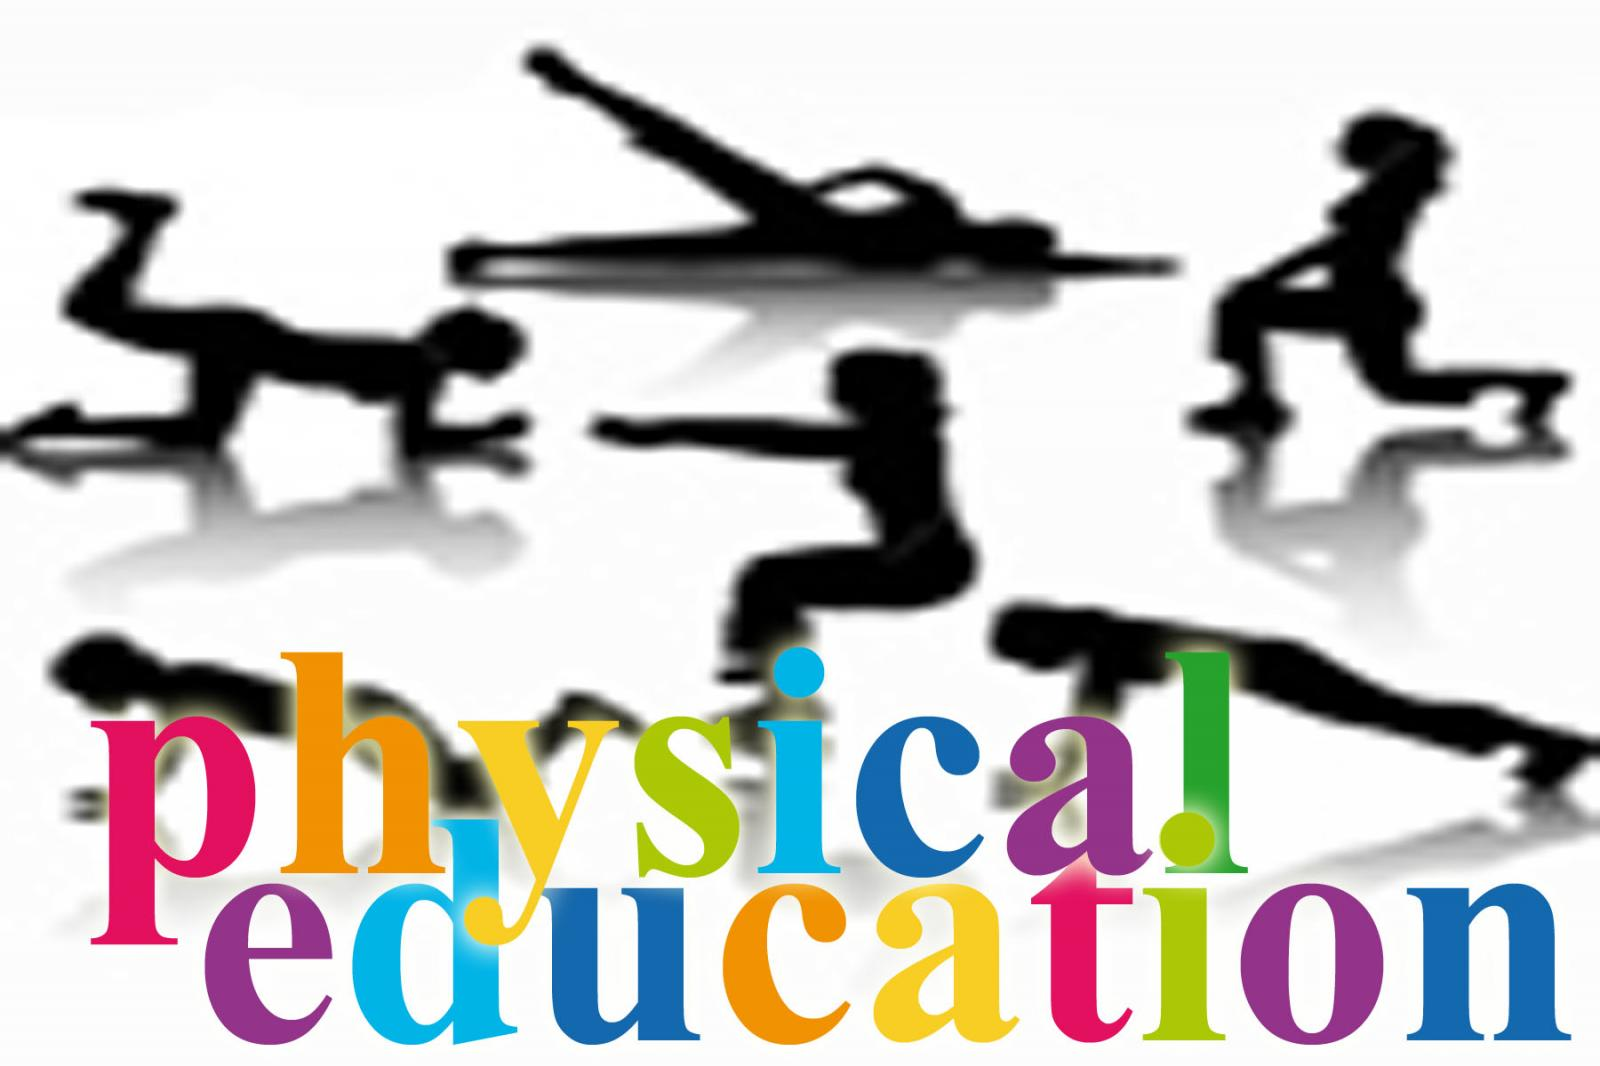 physical education clip art clipart panda free clipart images rh clipartpanda com adapted physical education clipart physical education clipart images